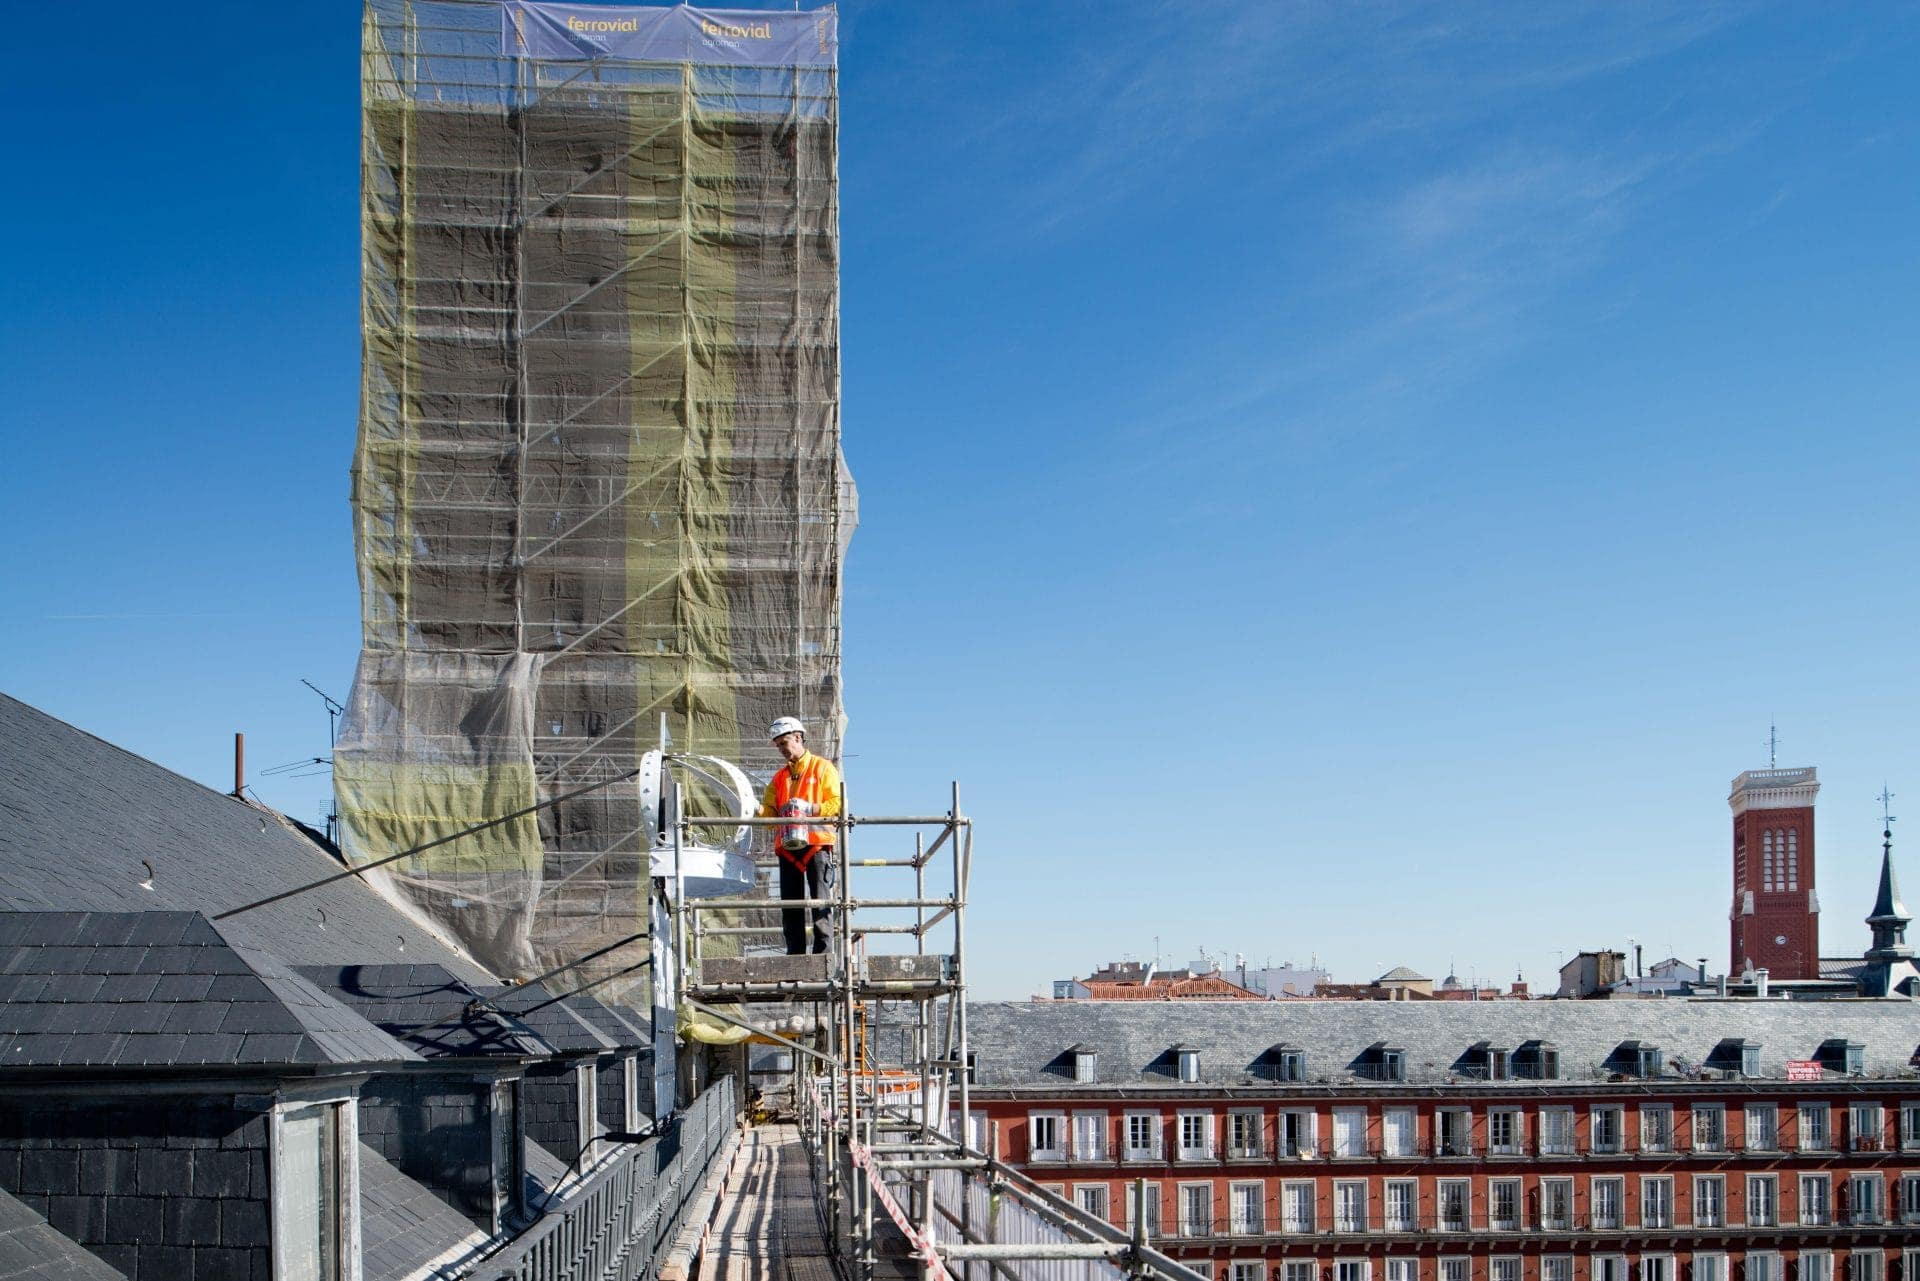 Ferrovial Agroman carried out the refurbishment of Casa de la Panadería, at Madrid's Plaza Mayor (Main Square)